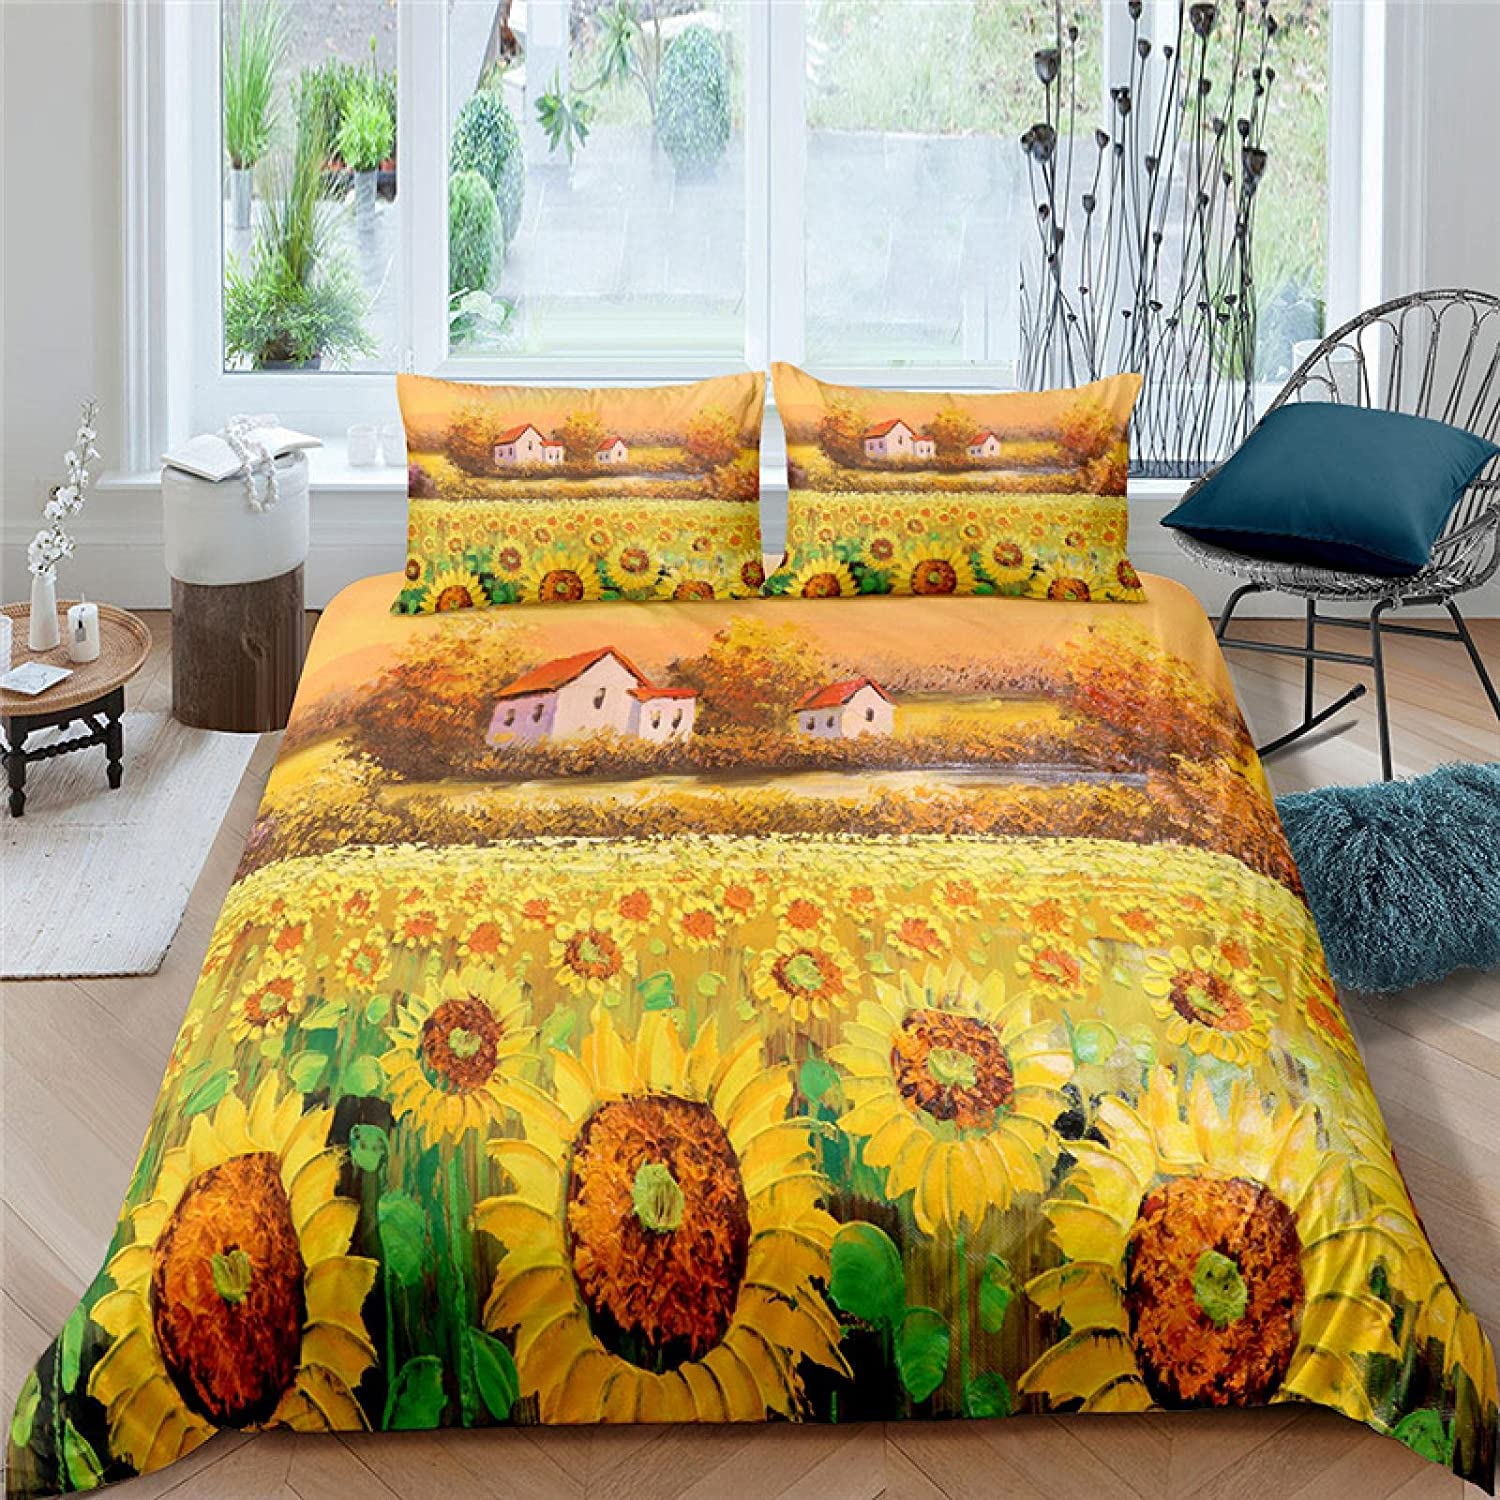 HQHM Duvet Cover King Safety excellence and trust 3 Pieces Plant Yellow Oil Painti Sunflower